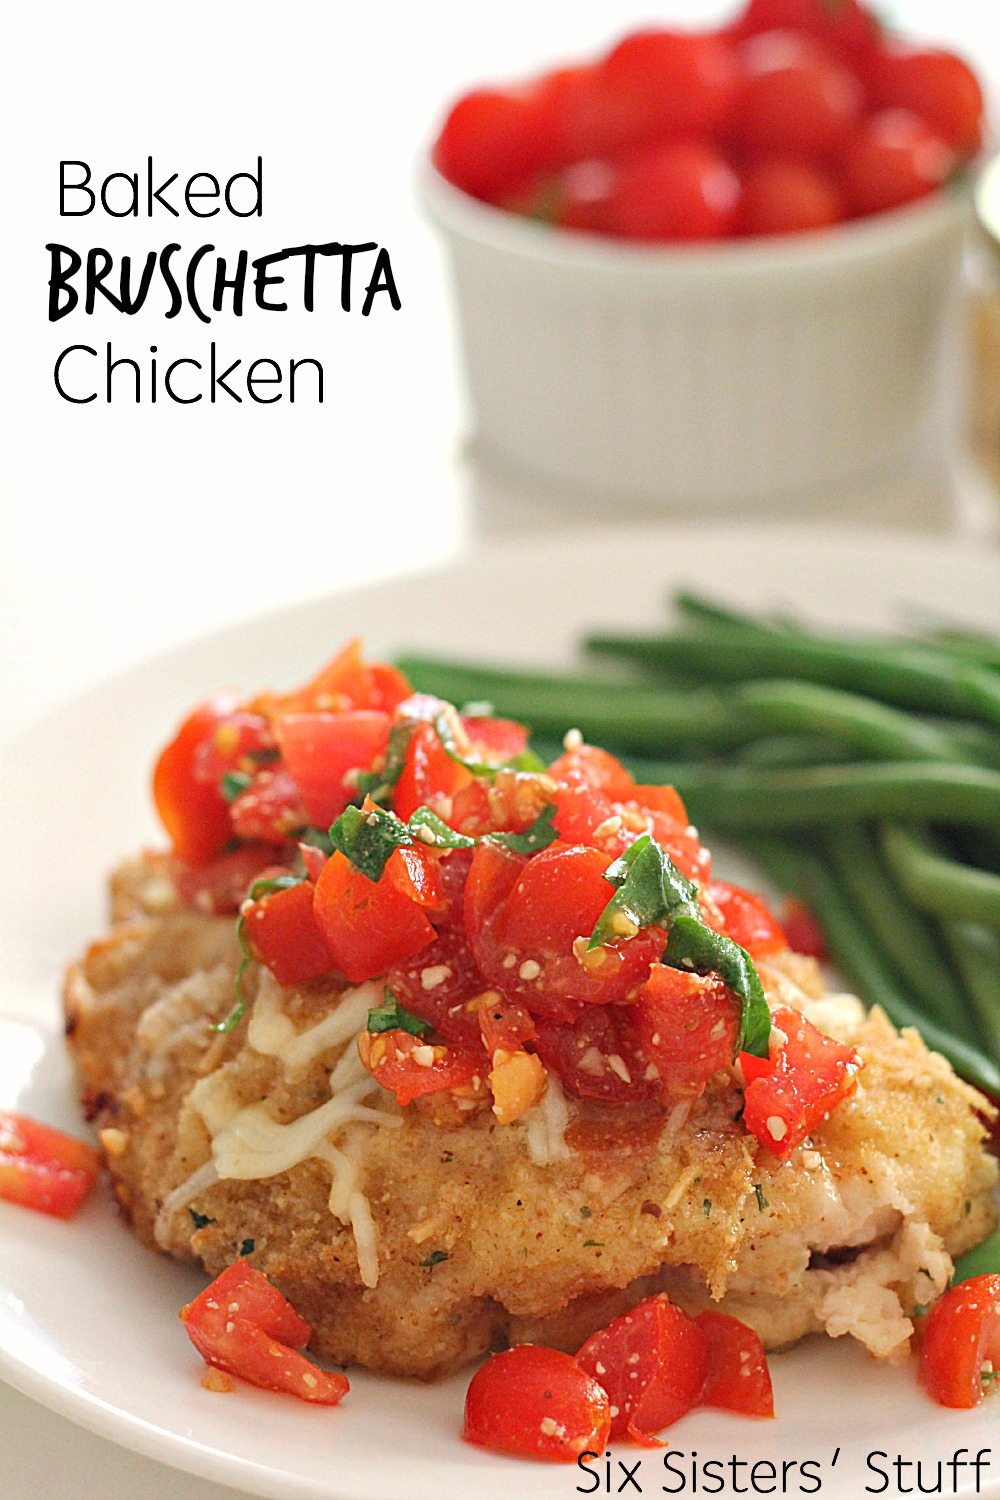 Baked-Bruschetta-Chicken-Recipe-SixSistersStuff